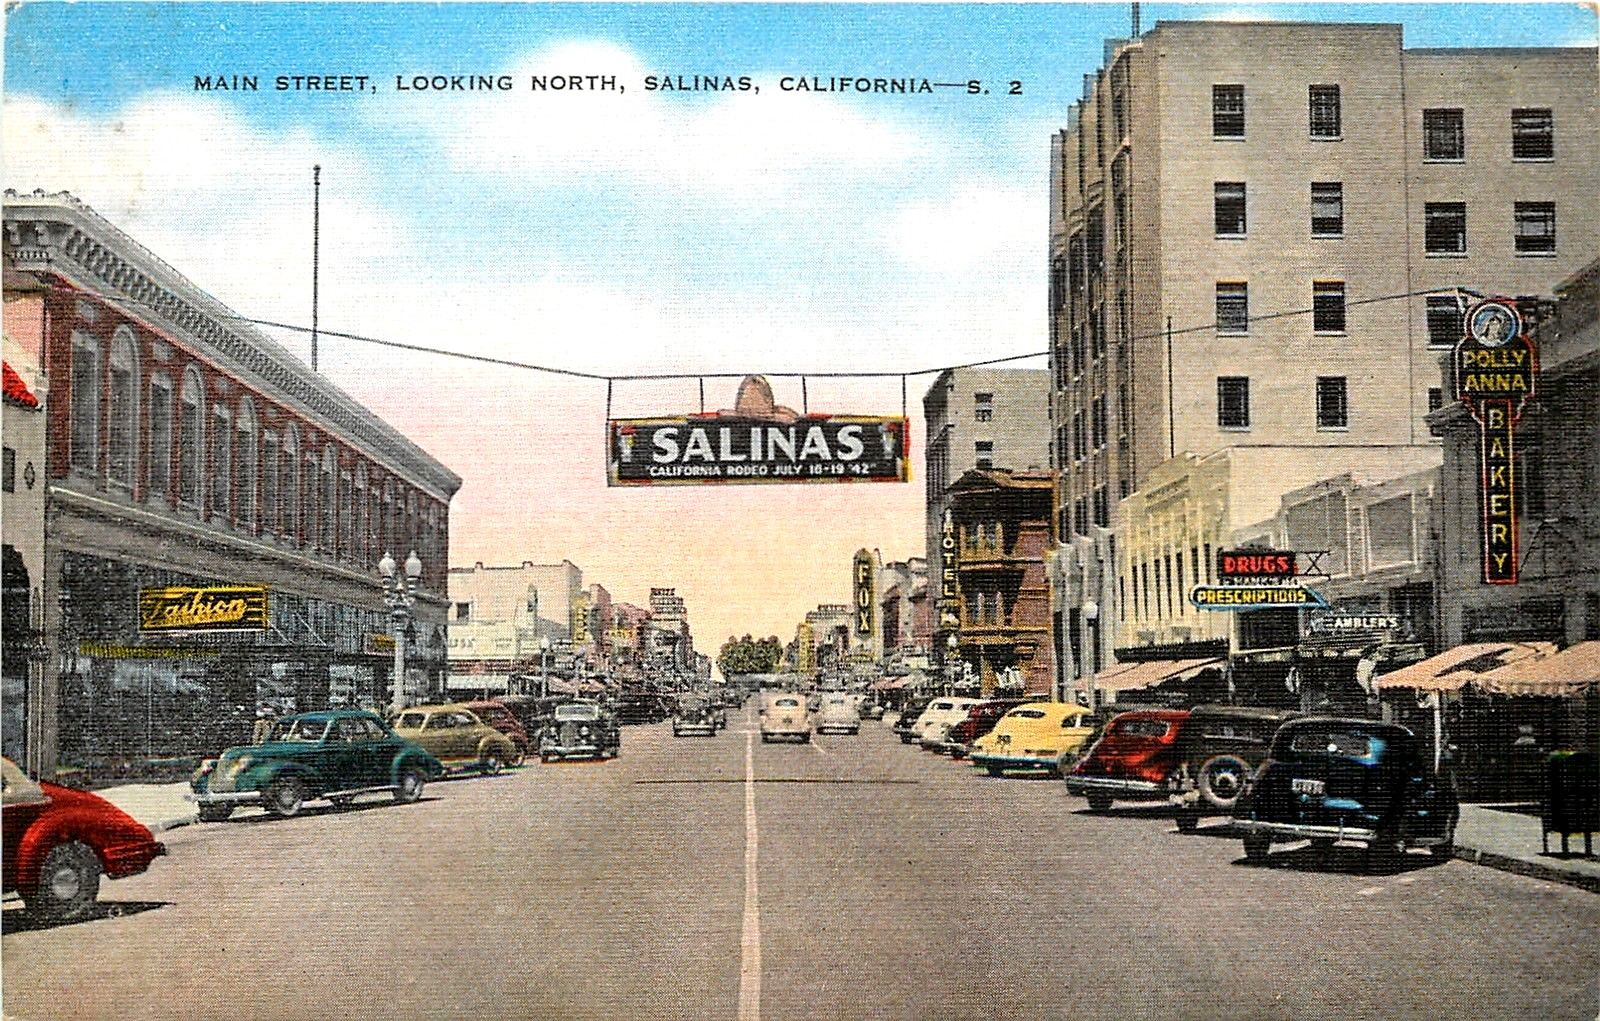 Salinas 1942 Kytherian Society Of California Ksoca